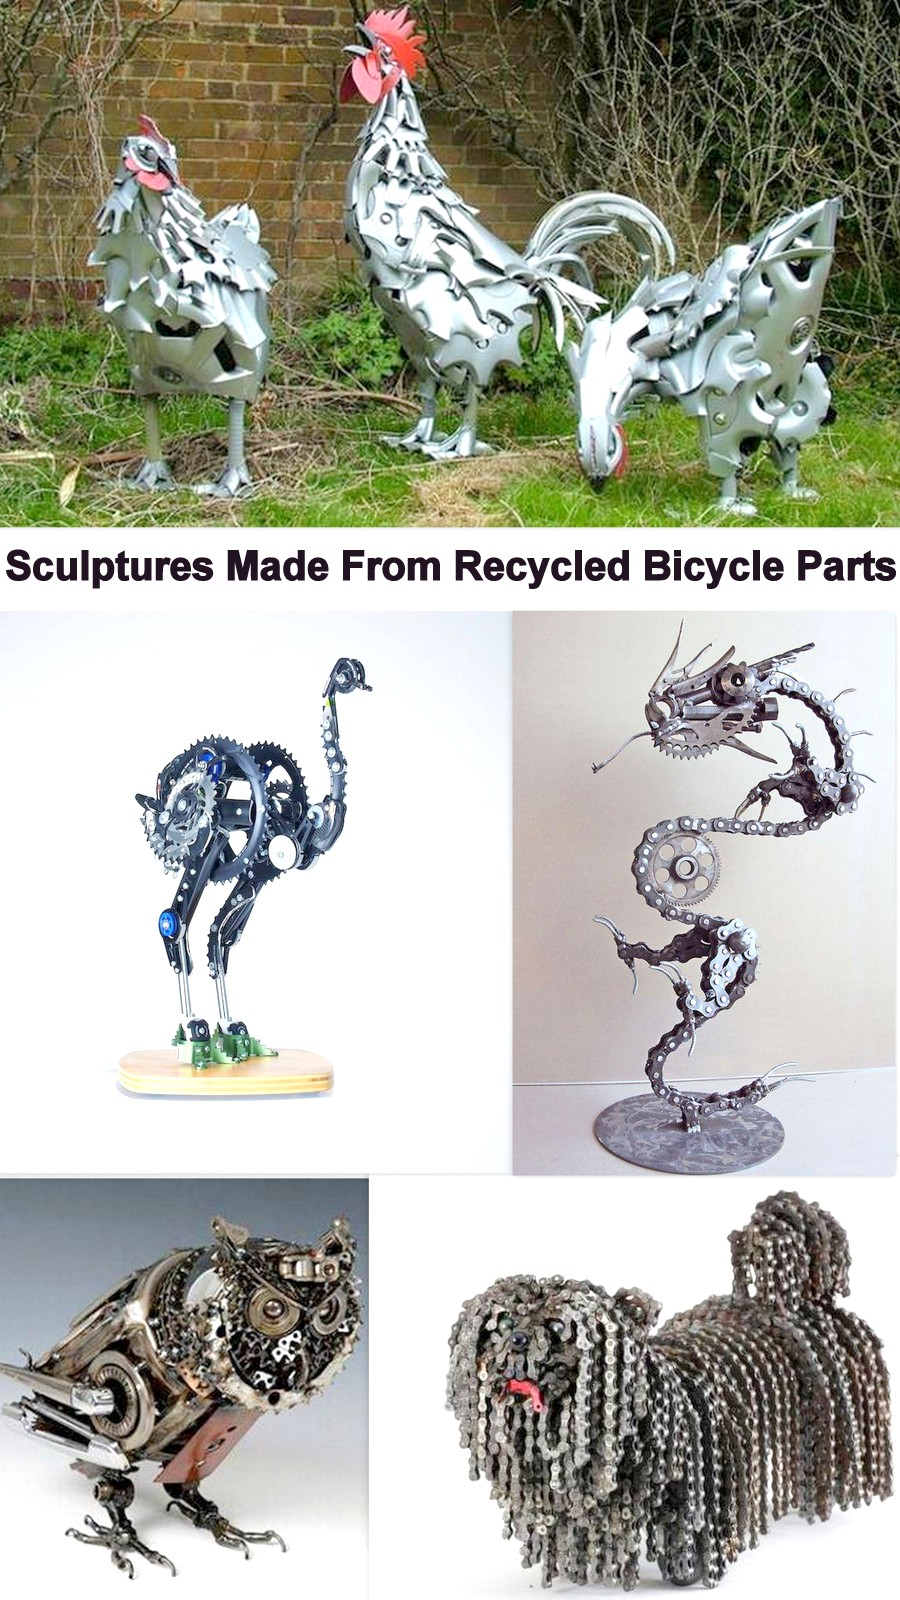 Sculptures Made From Recycled Bicycle Parts